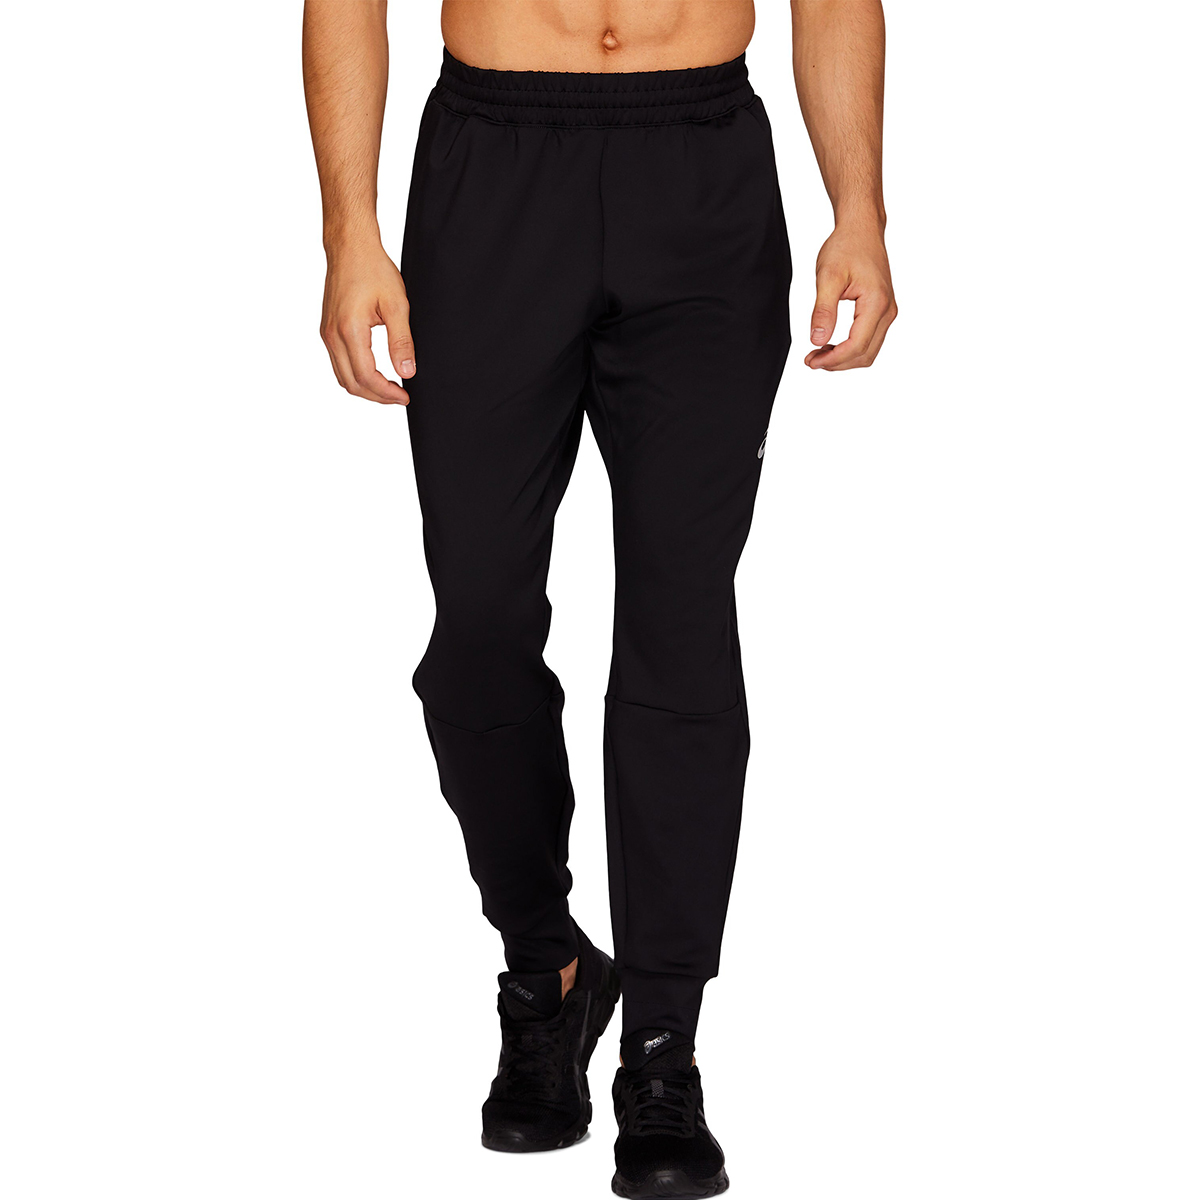 Asics Men's Thermopolis Joggers - Black, M